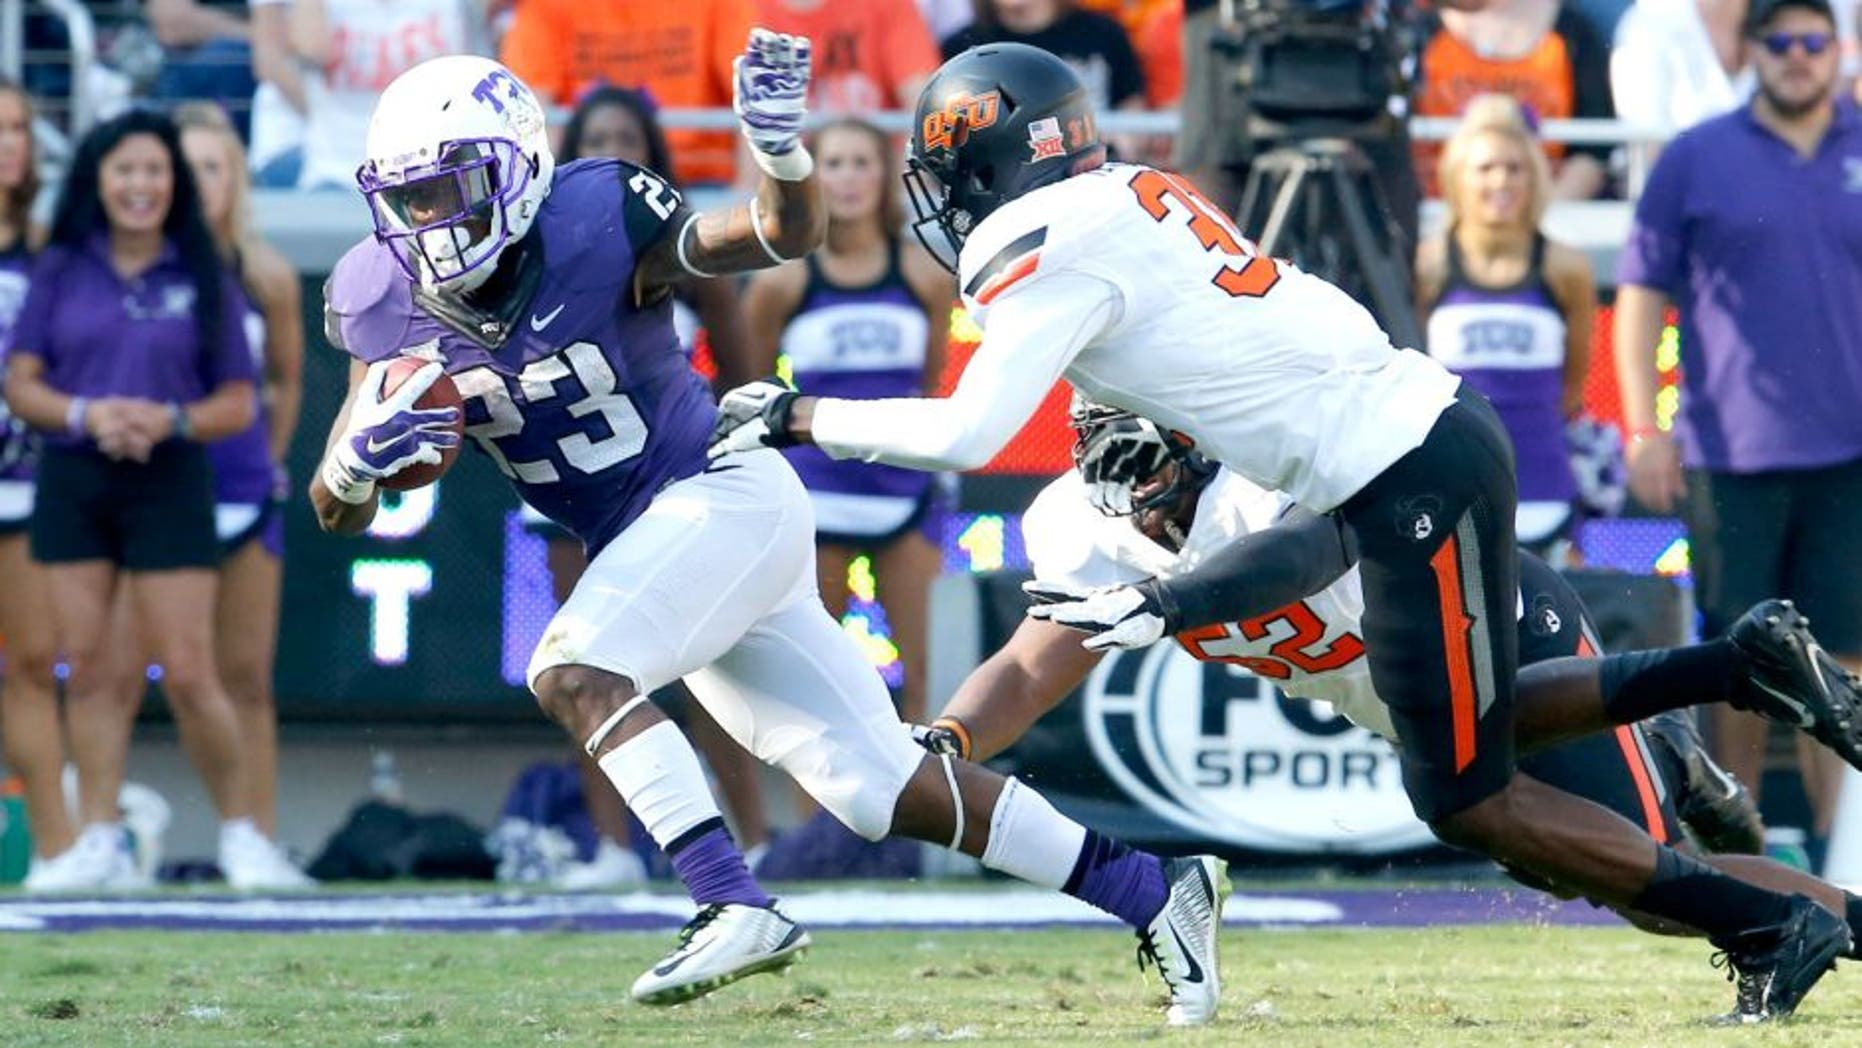 Oct 18, 2014; Fort Worth, TX, USA; TCU Horned Frogs tailback B.J. Catalon (23) runs with the ball against Oklahoma State Cowboys safety Tre Flowers (31) at Amon G. Carter Stadium. Mandatory Credit: Matthew Emmons-USA TODAY Sports